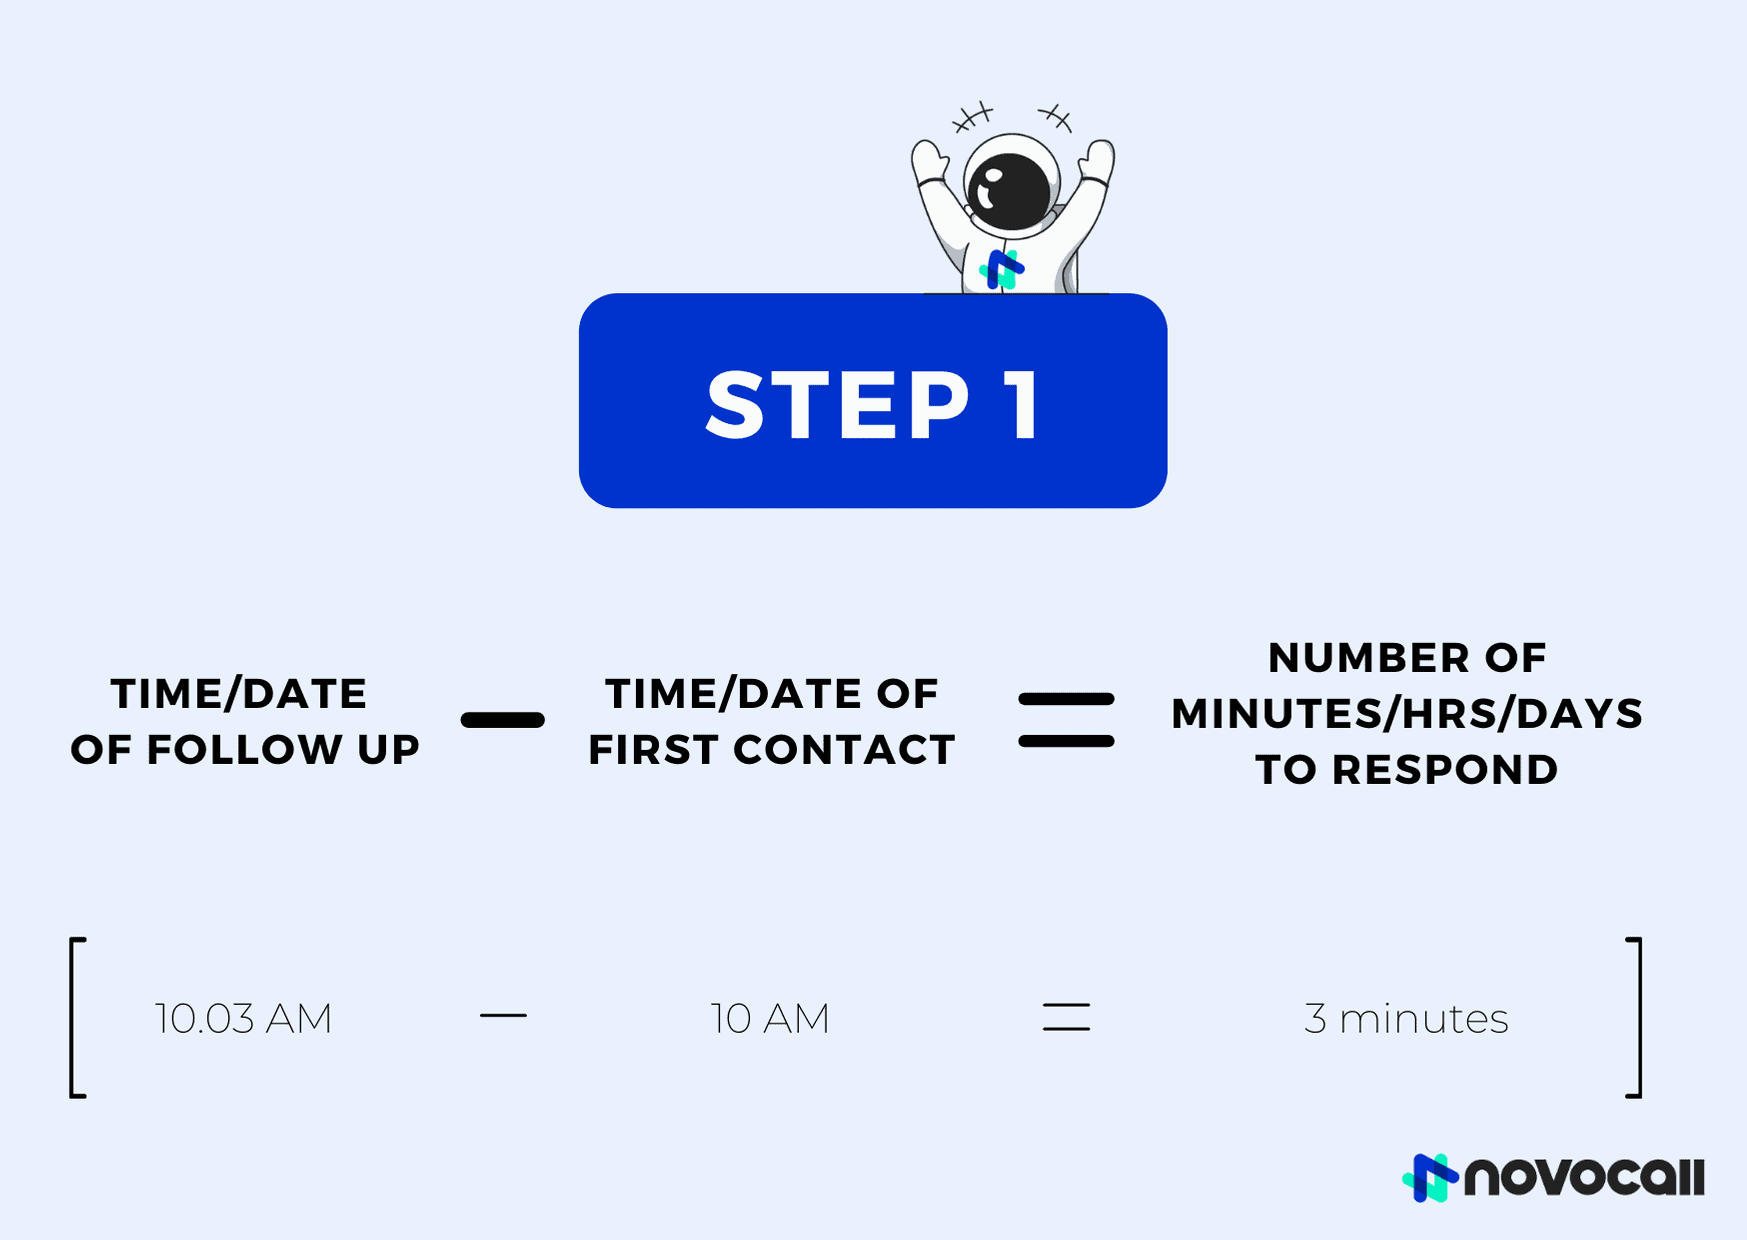 Once you calculate the lead response time for every lead, calculate the total lead response time and then divide it by the number of contacts or leads to obtain the average lead response time.